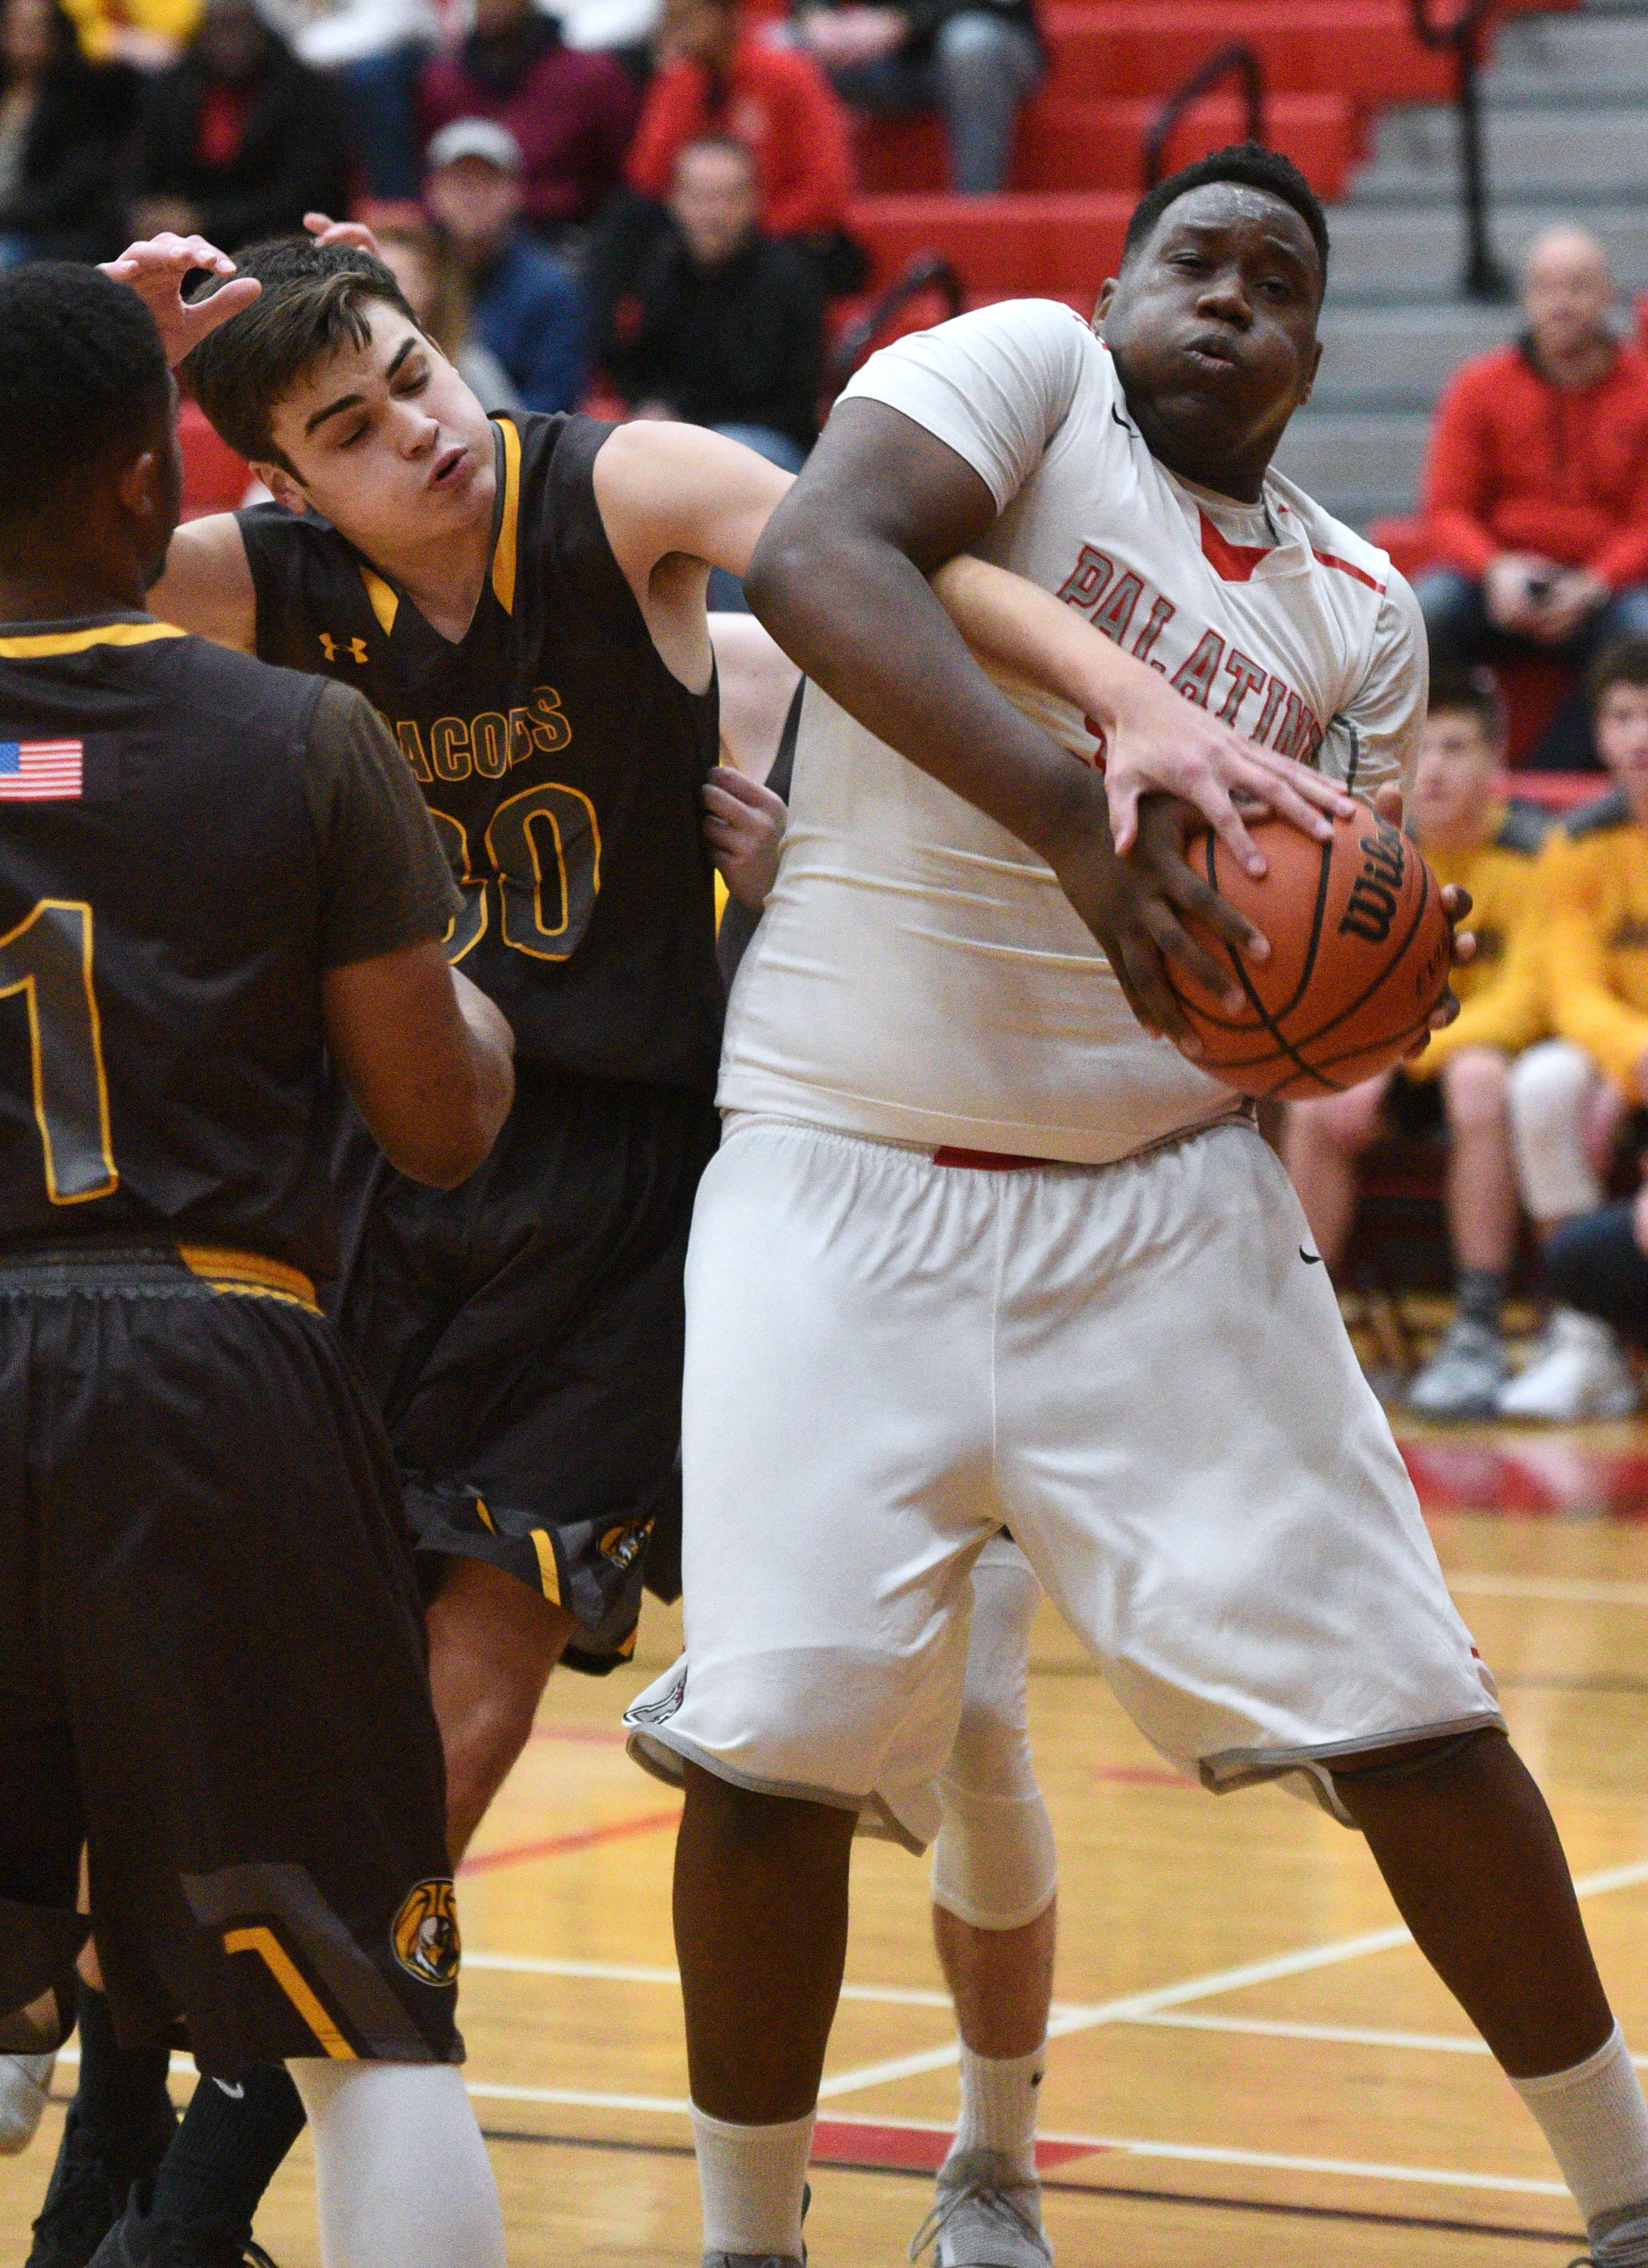 Jacobs' Riley Anderson, left, and Palatine's Julian Campbell fight for a rebound during Friday's boys basketball game in Palatine.